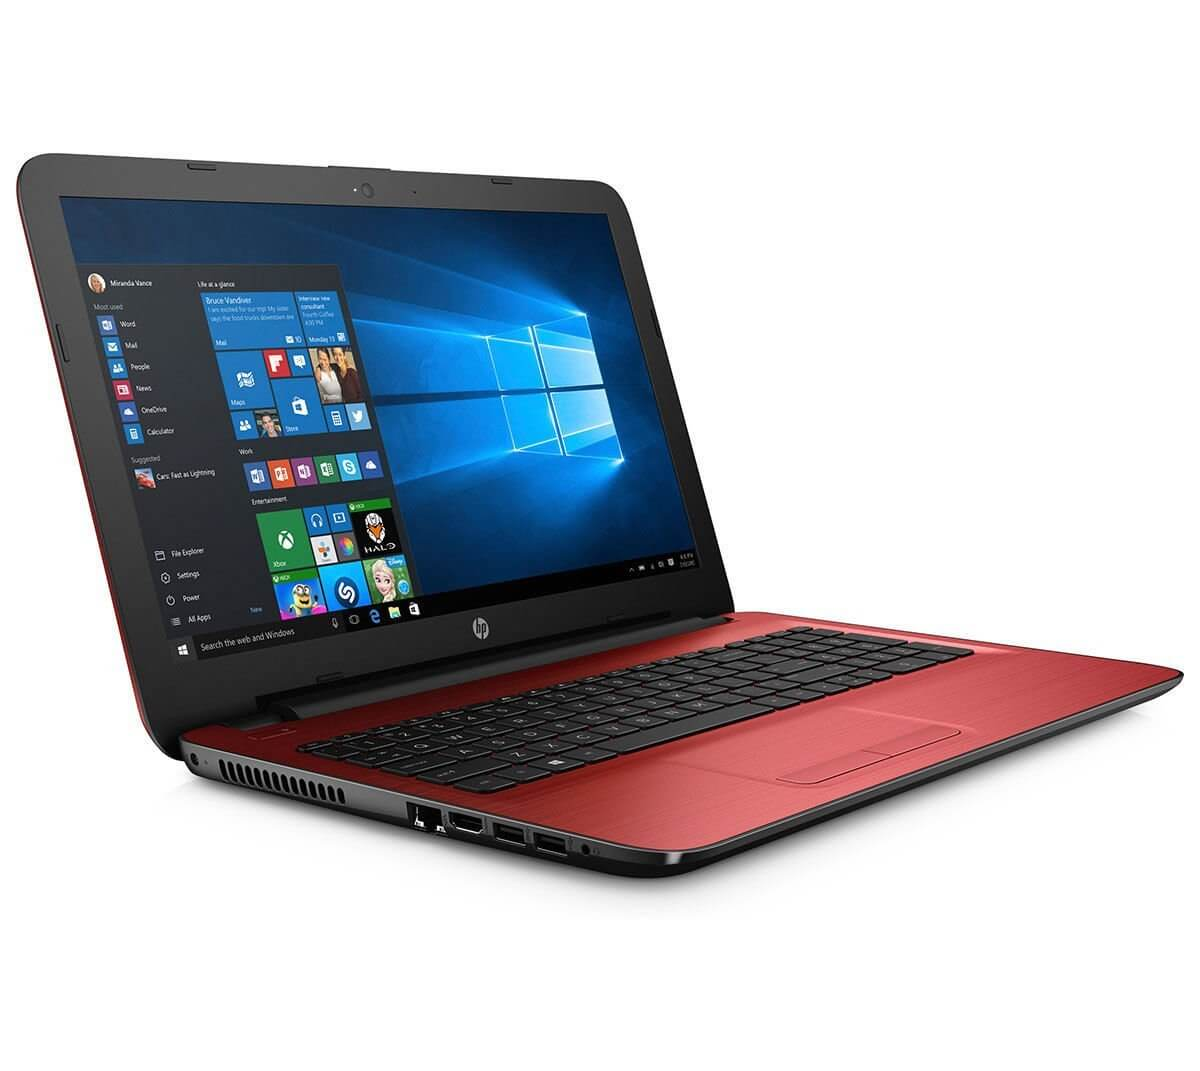 HP-NB-15-AY564TU-Intel Core i3-6006U (2 GHz, 3 MB cache)/4 GB DDR4 RAM/ 1 TB HDD/DOS Cardinal Red